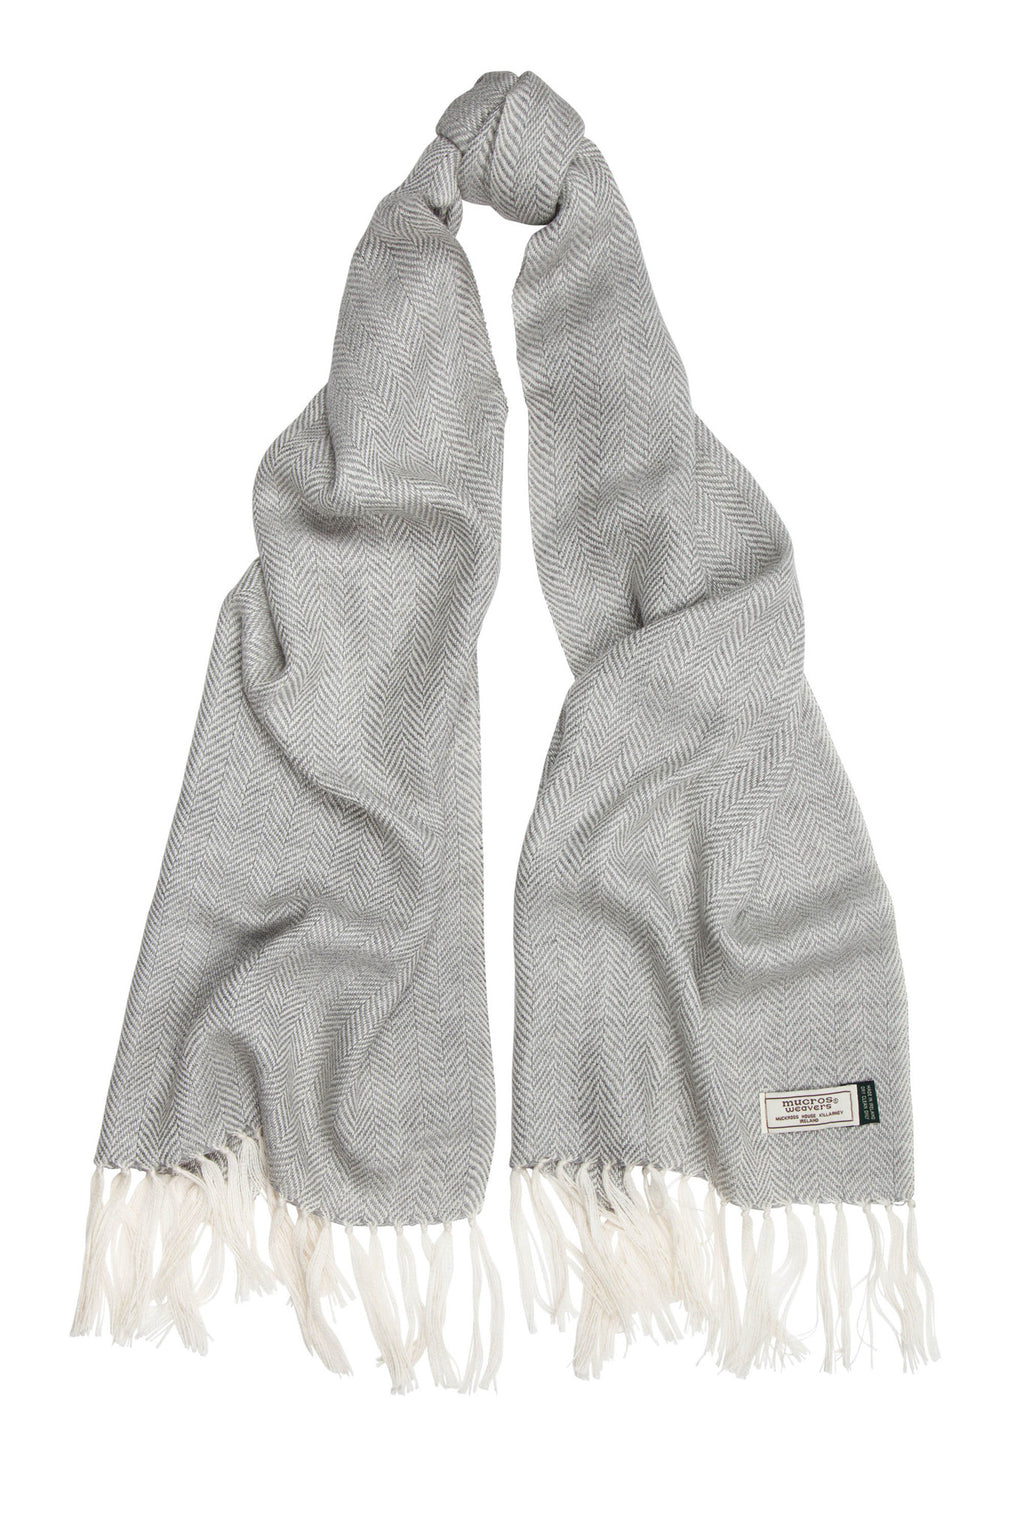 Mucros Weavers Alpaca & Silk Scarf Light Grey - MoMuse Jewellery